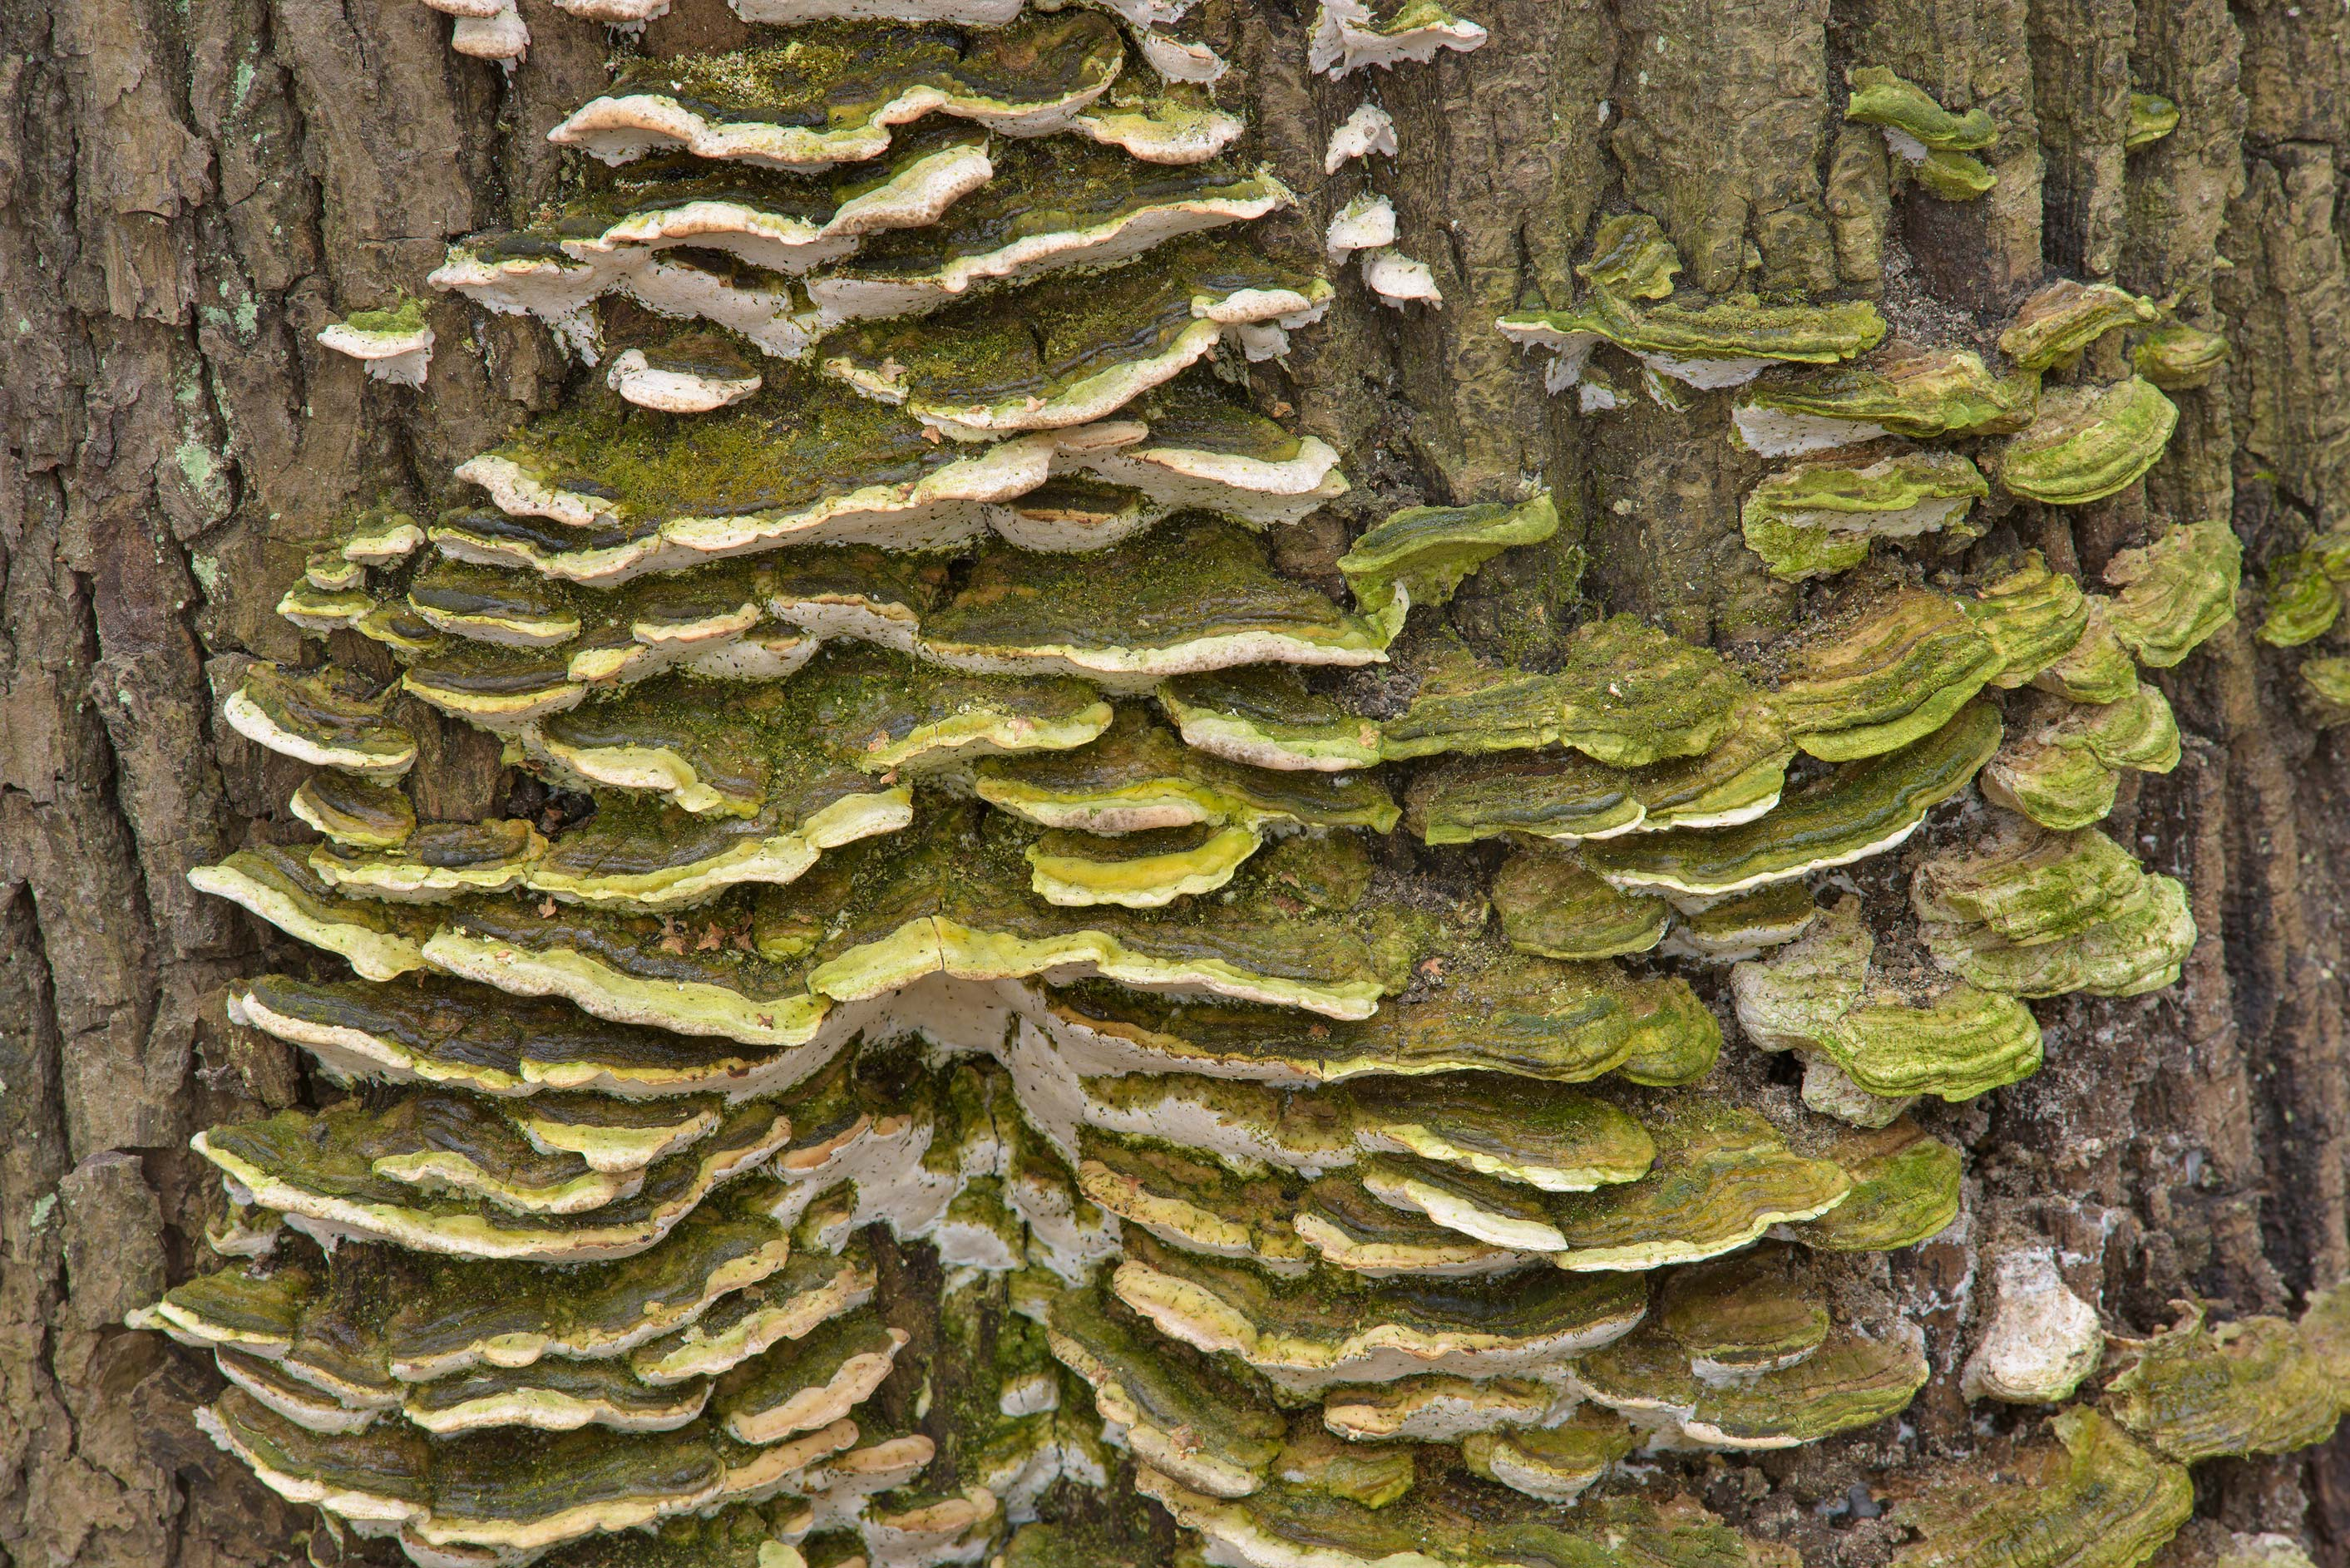 Mossy maple polypore mushrooms (Oxyporus...Cemetery. St.Petersburg, Russia